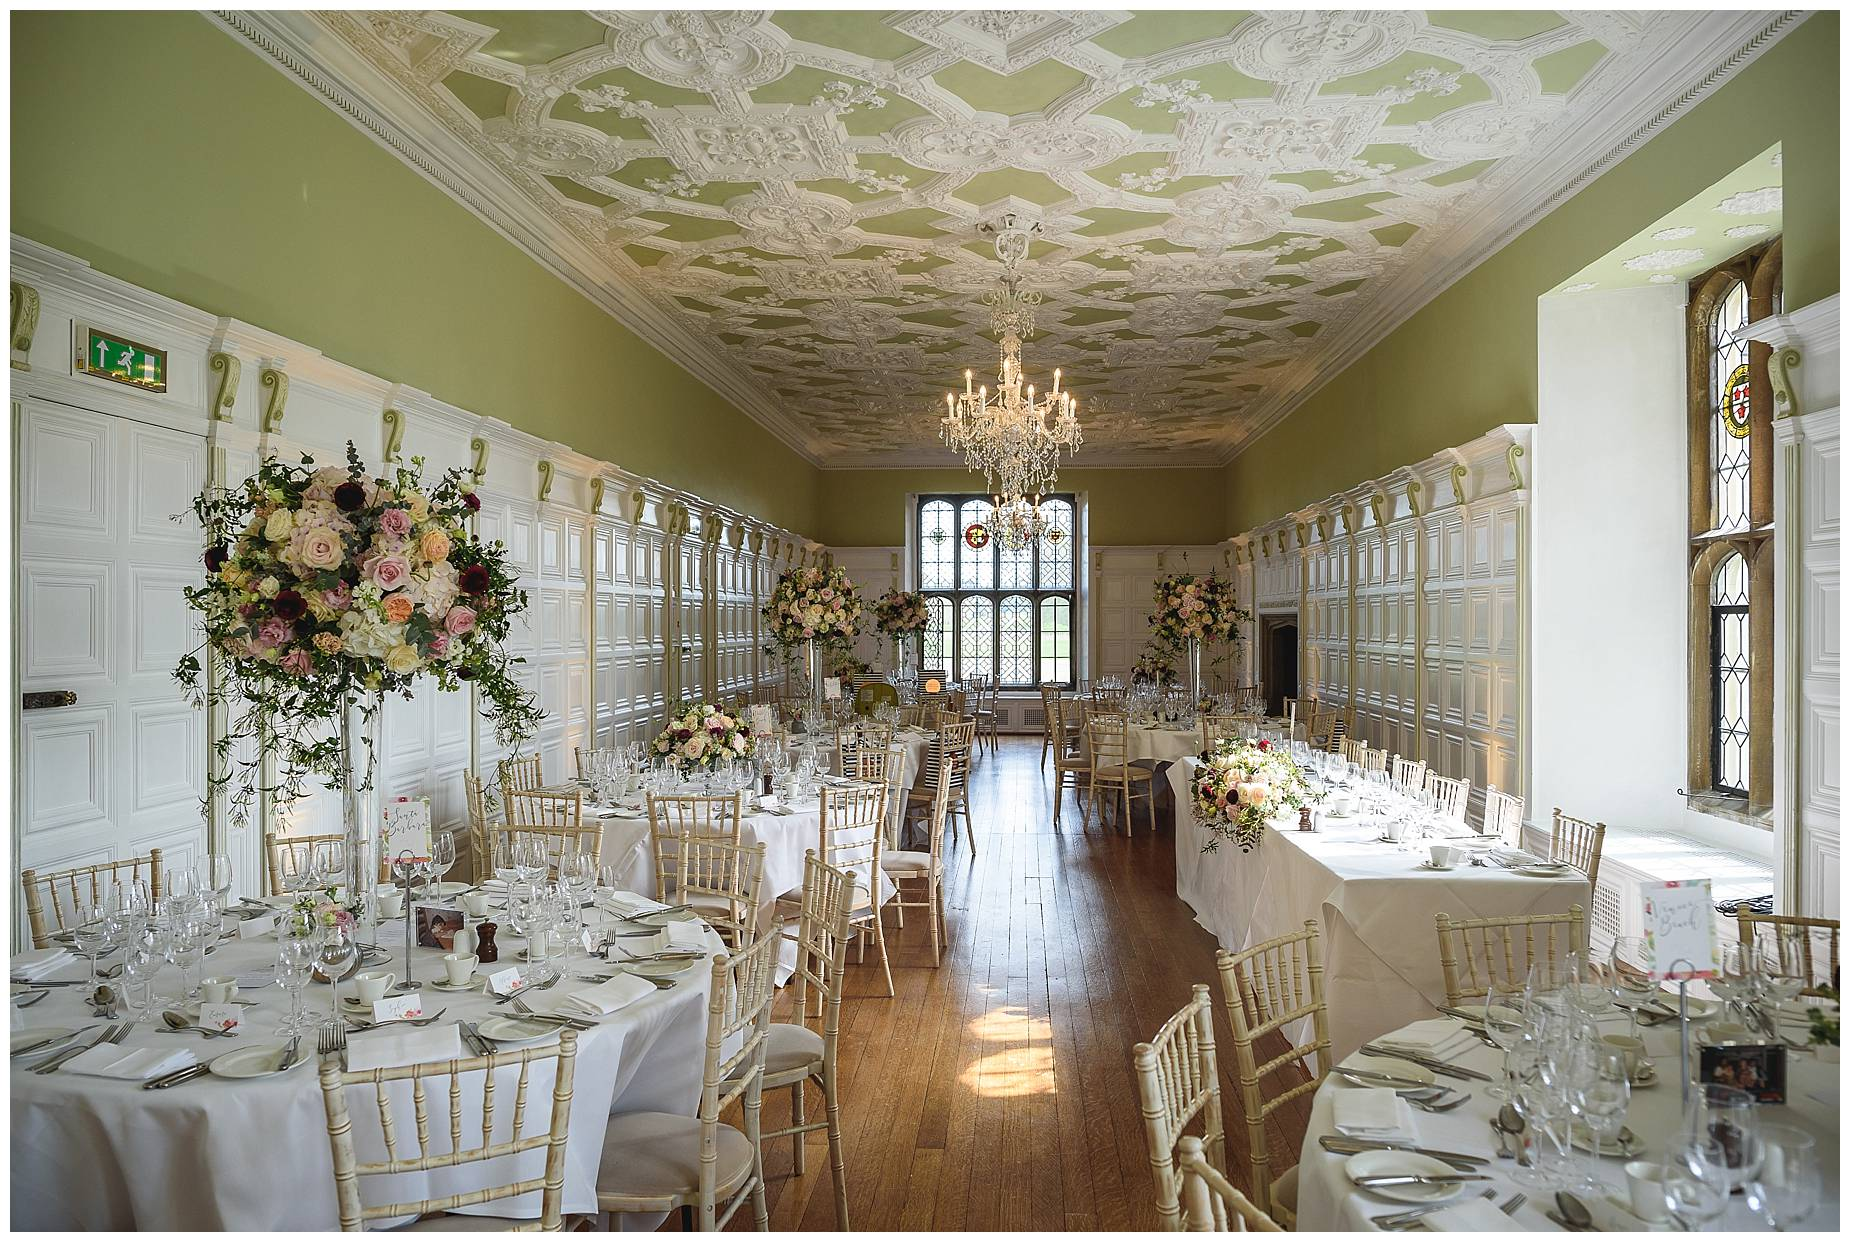 the romm at Wedding Hengrave Hall